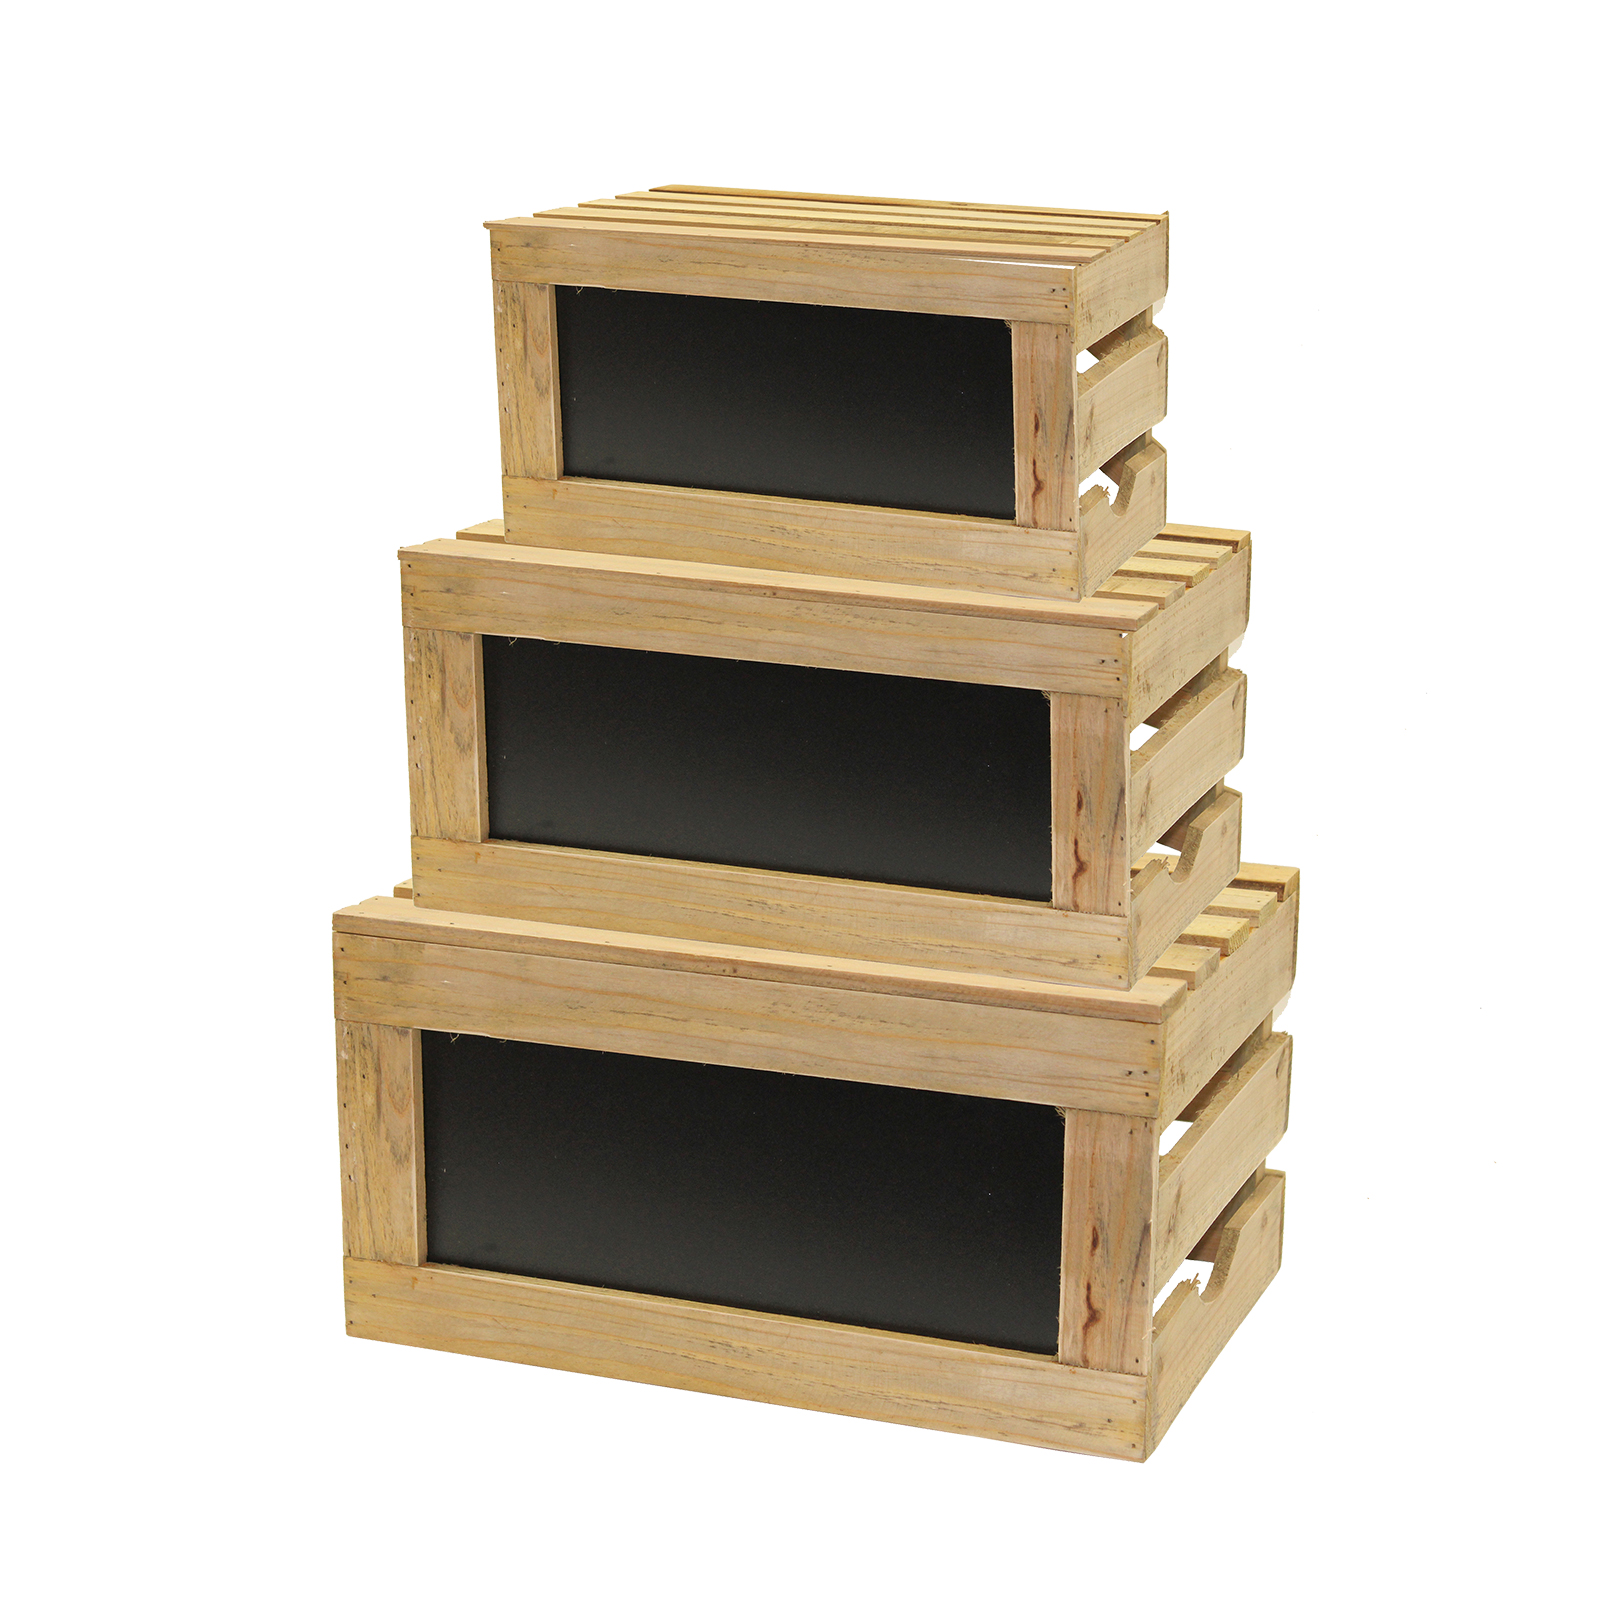 TableCraft Products RCBCRATE1 display riser, set